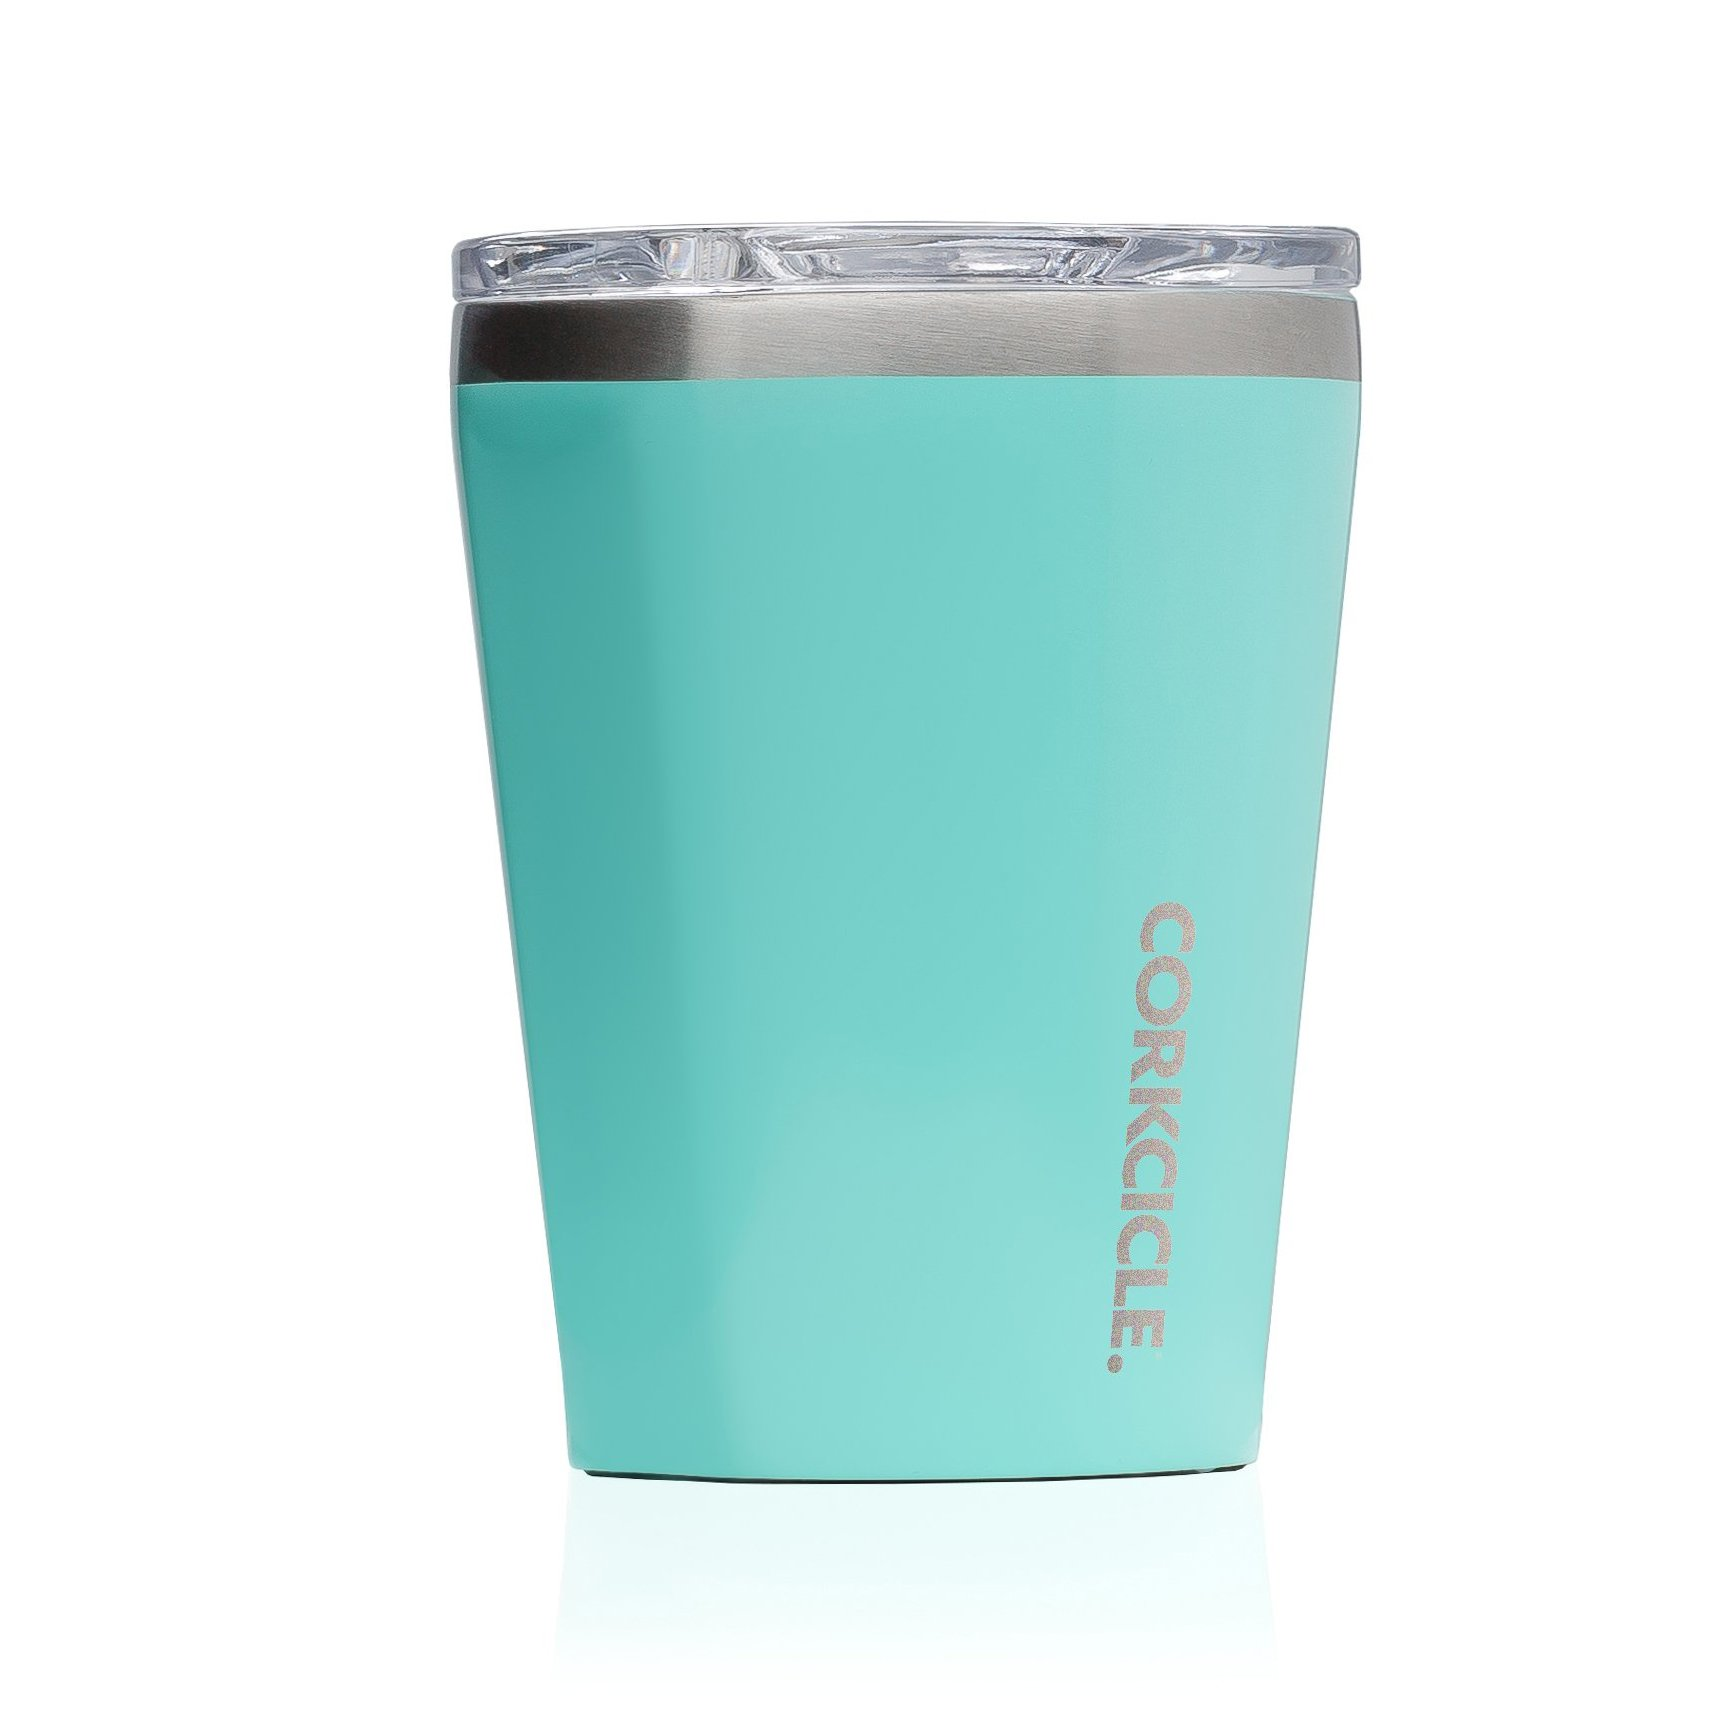 Corkcicle 12 oz Triple-Insulated Tumbler (Perfect for Coffee - Cocktails - Tea) - Gloss Turquoise